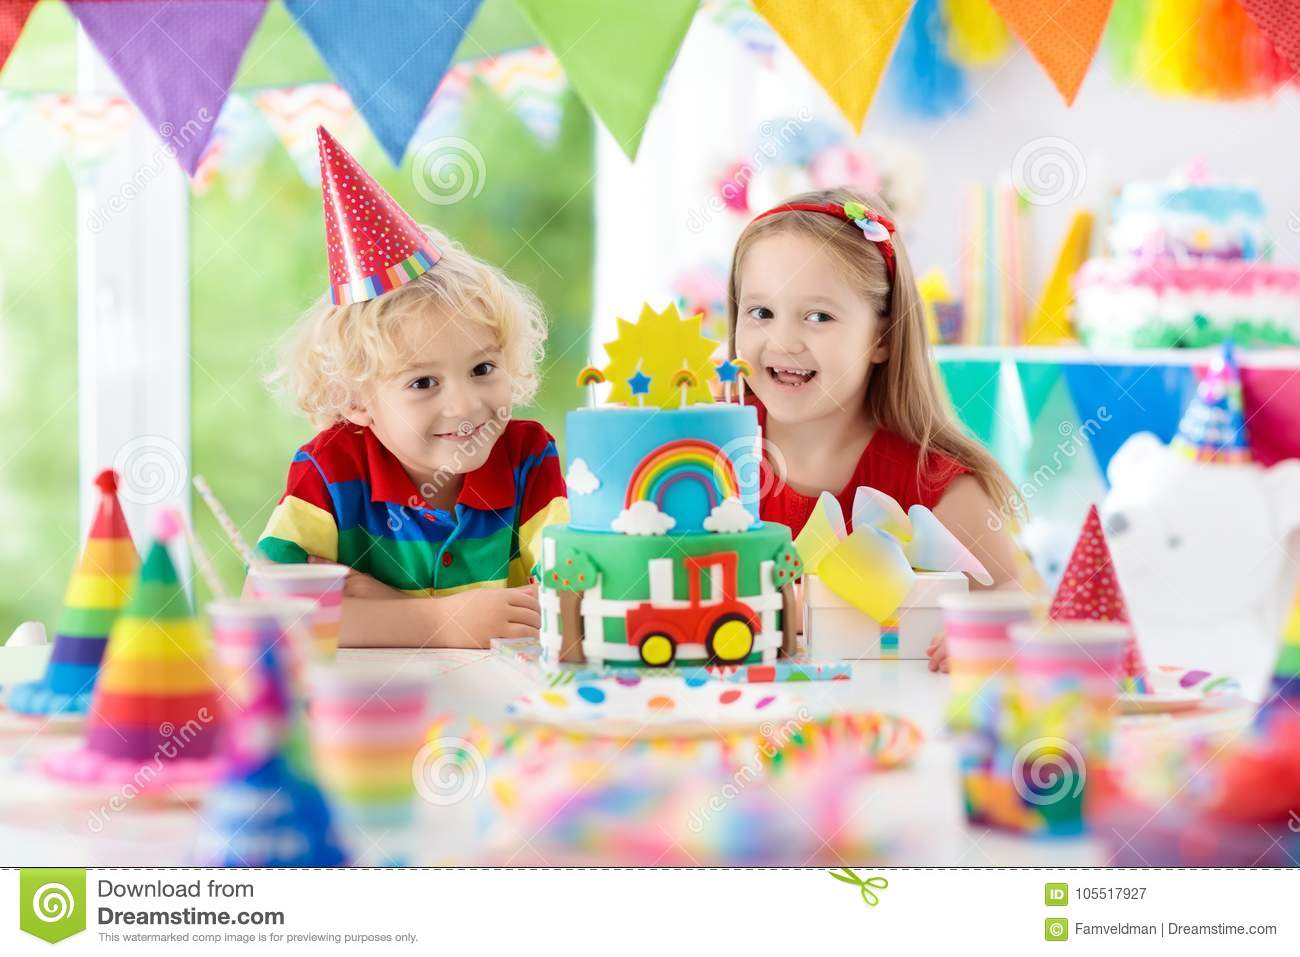 Kids Party Birthday Cake With Candles For Child